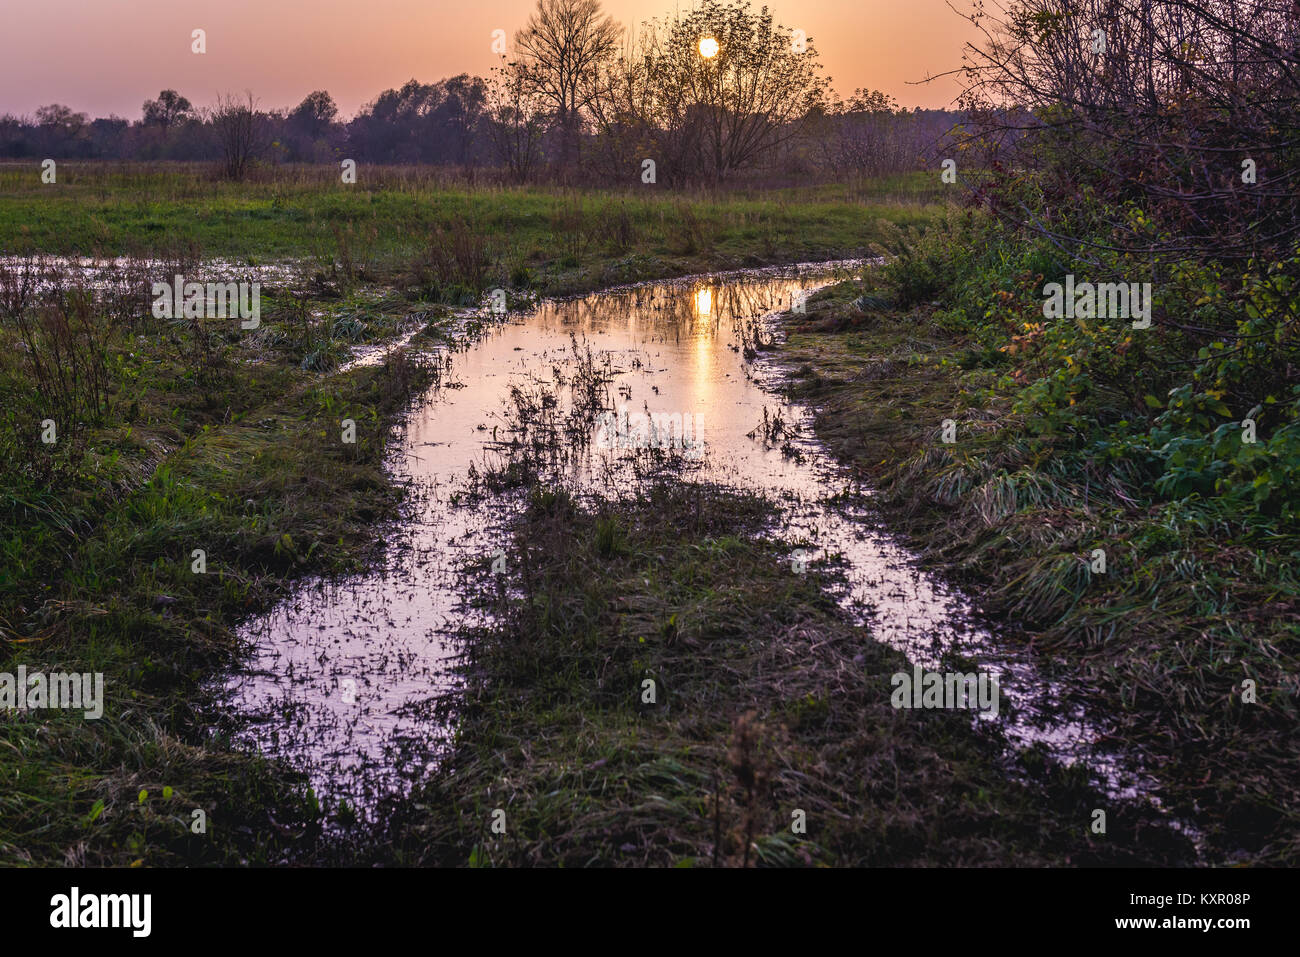 Sunset over flooded field road in Witkowice village, Sochaczew County in Masovian Voivodeship of Poland - Stock Image